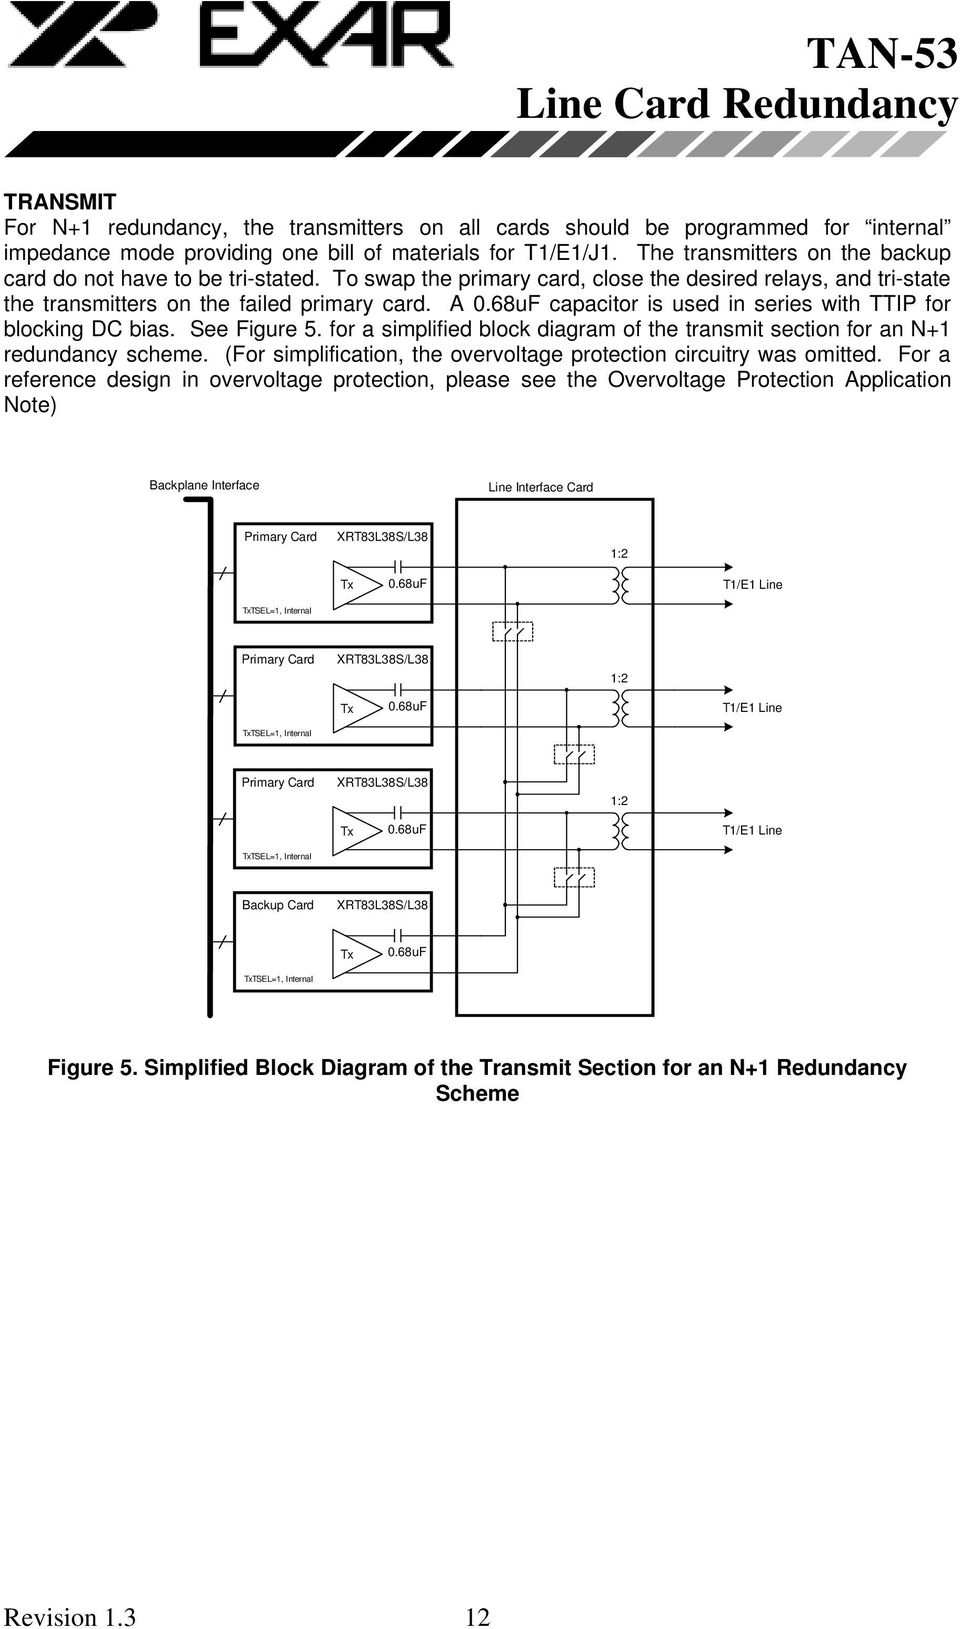 A capacitor is used in series with TTIP for blocking DC bias. See Figure 5. for a simplified block diagram of the transmit section for an N+1 redundancy scheme.